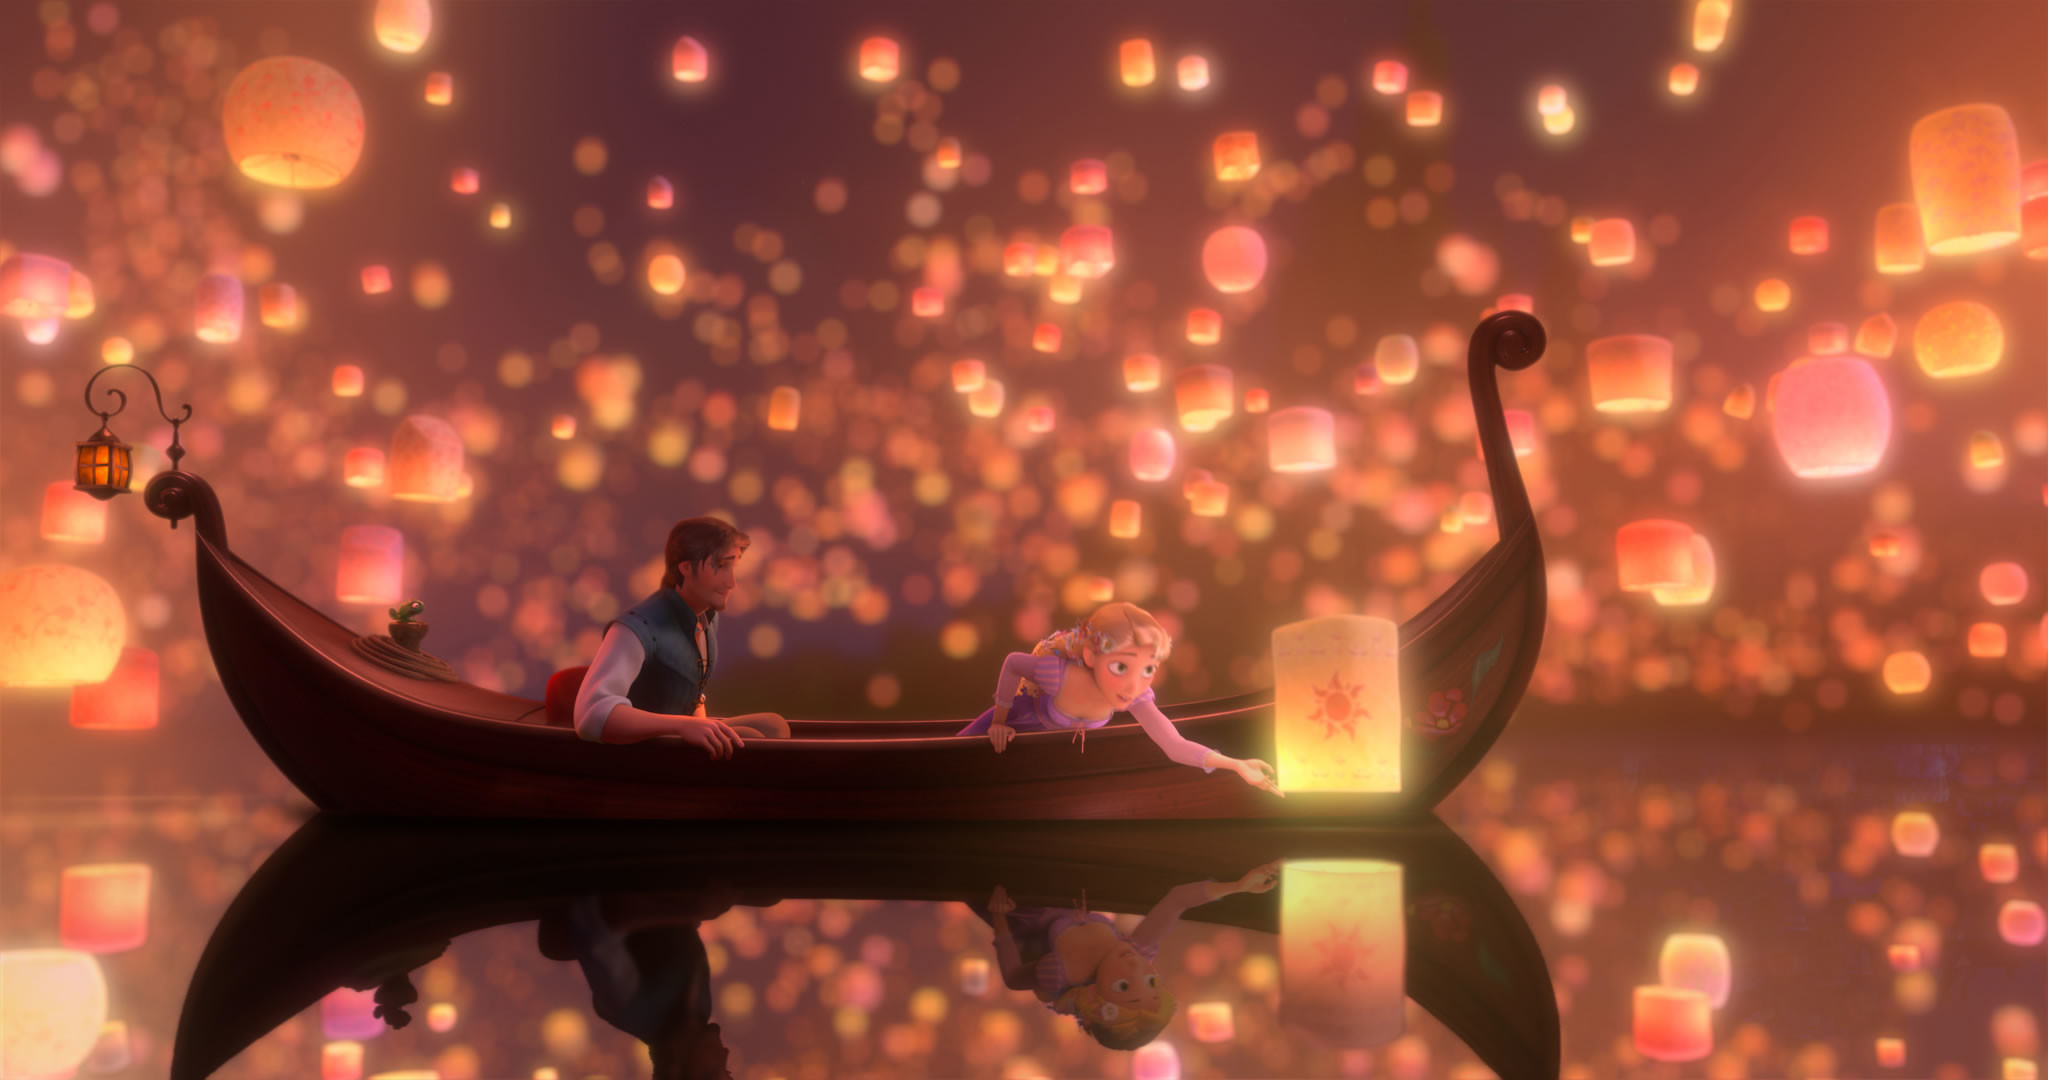 Tangled, HQ Definition Wallpaper, Mullally. 0.167 MB. Tangled  Pics. High Definition Tangled Wallpaper …